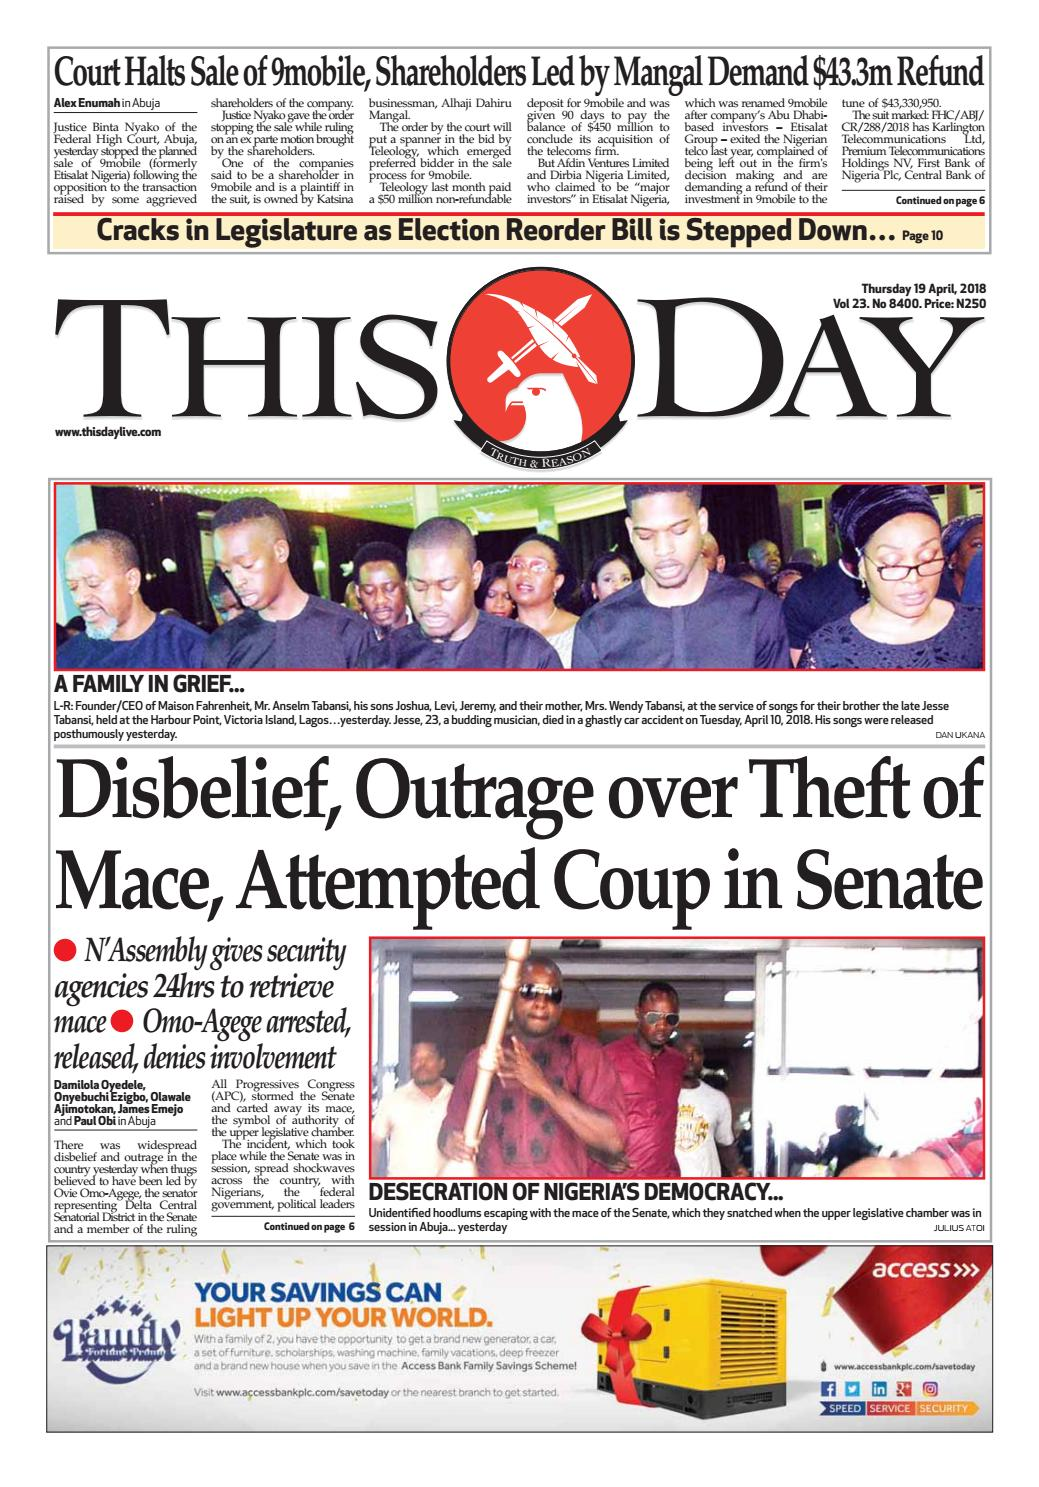 THURSDAY 19TH APRIL 2018 by THISDAY Newspapers Ltd - issuu